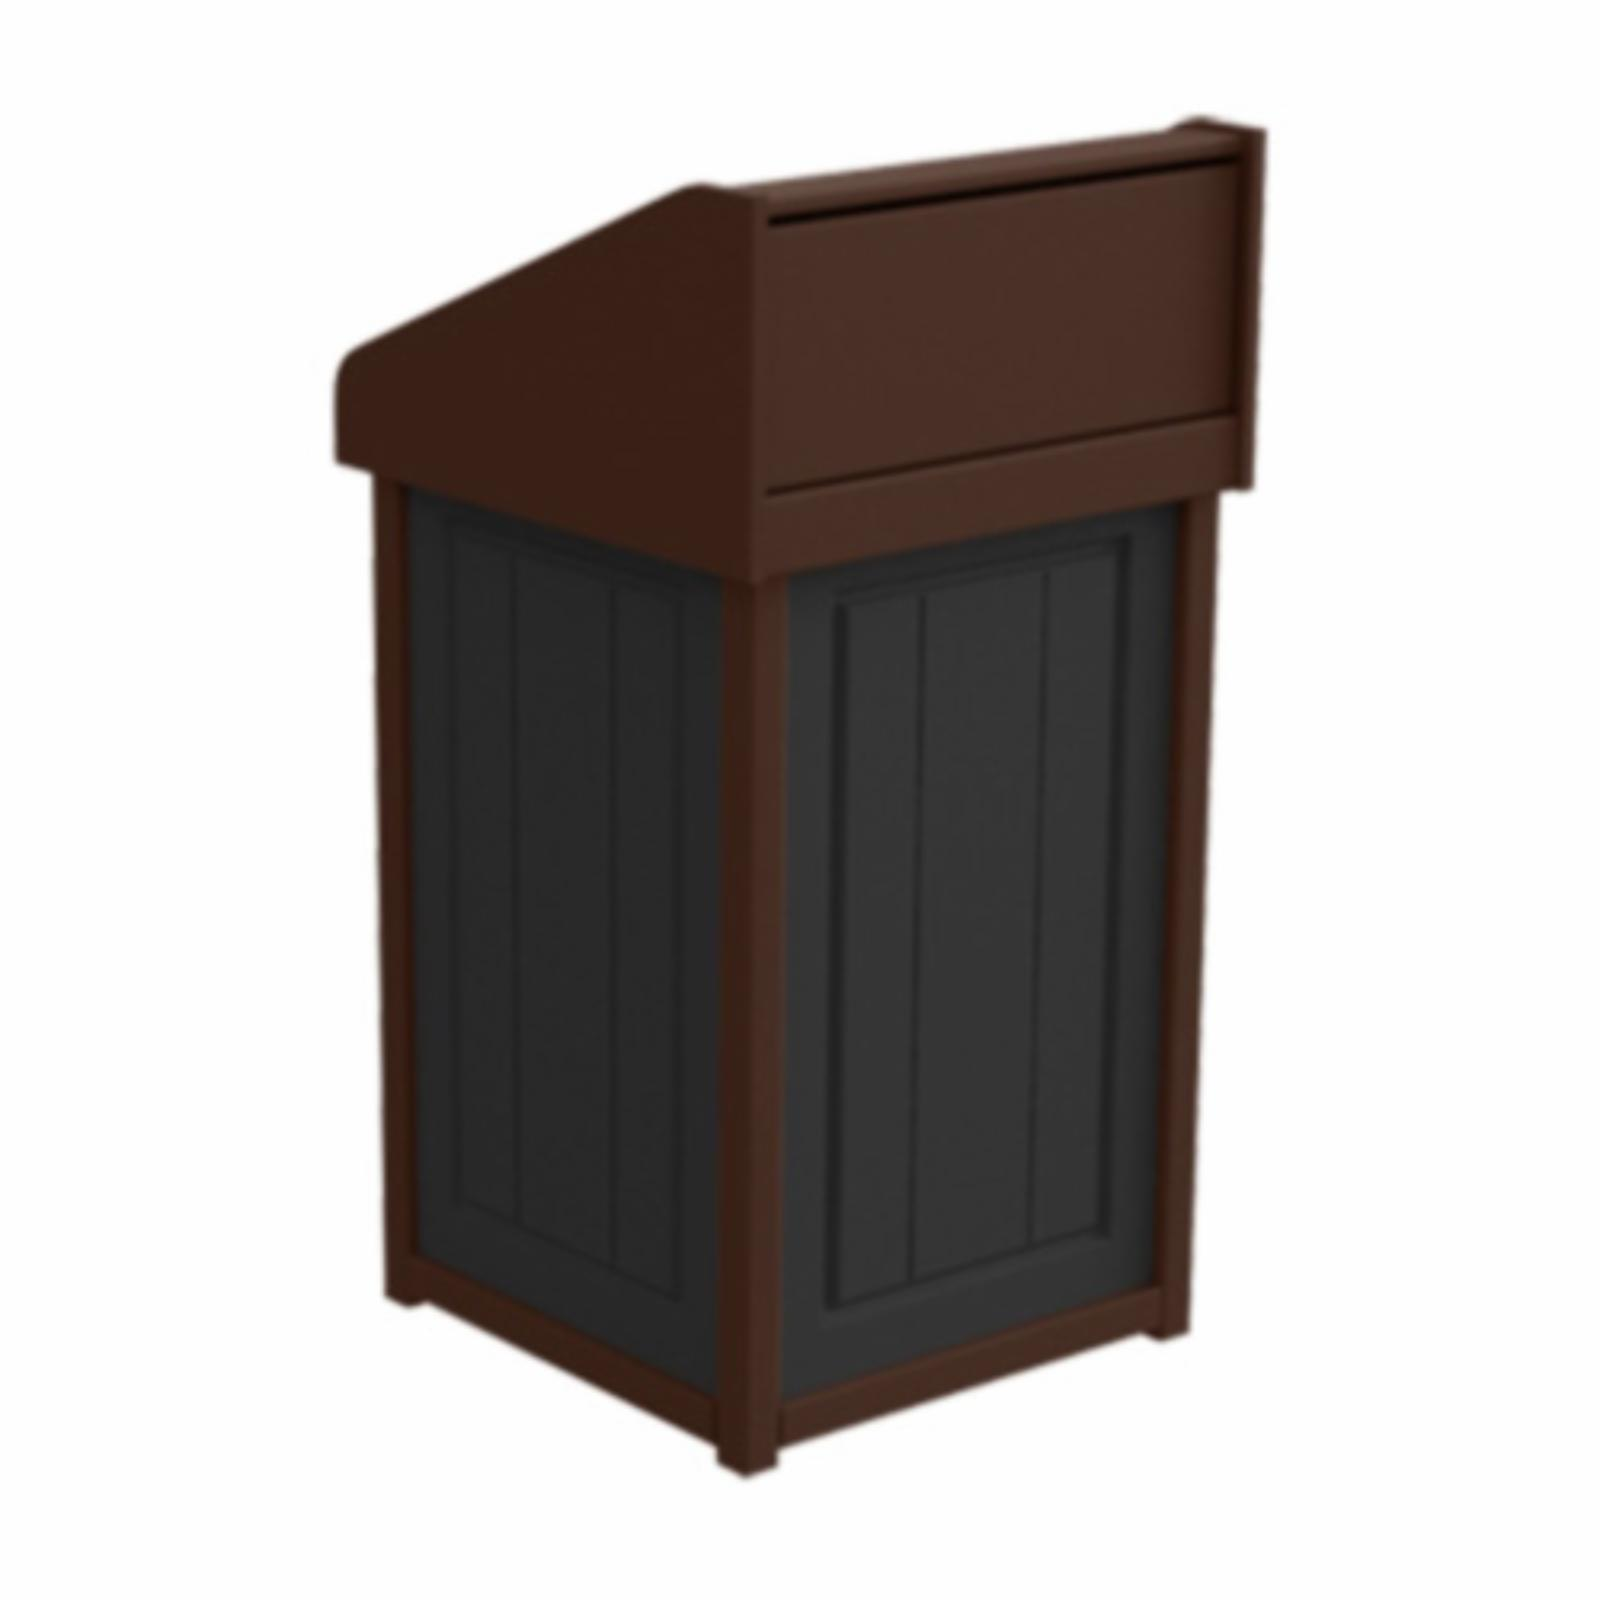 Treetop Products Two-Tone 33 Gallon Square Side Load Outdoor Push Door Trash Receptacle Black/Brown - 4ZK4749-BK/BN